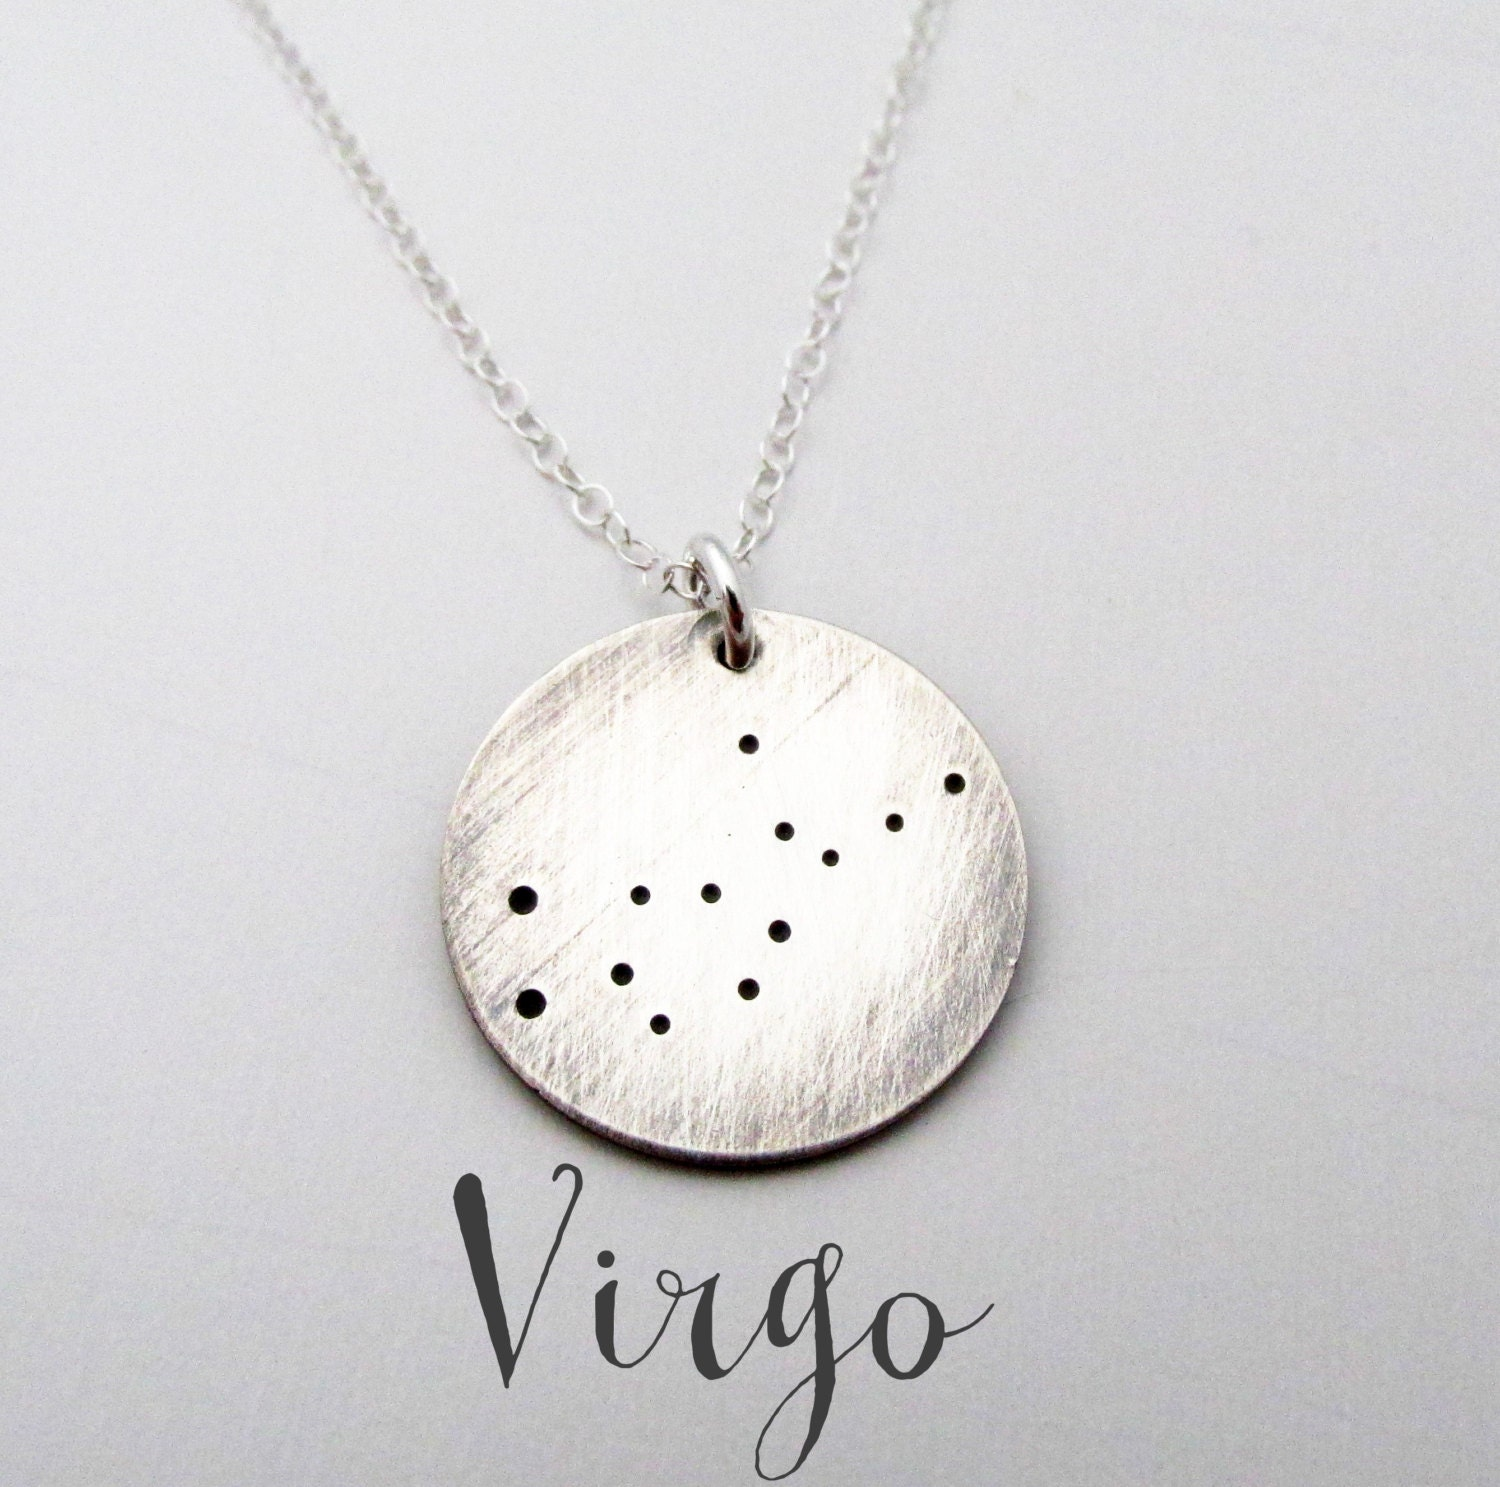 gold virgo necklace birthstone constellation